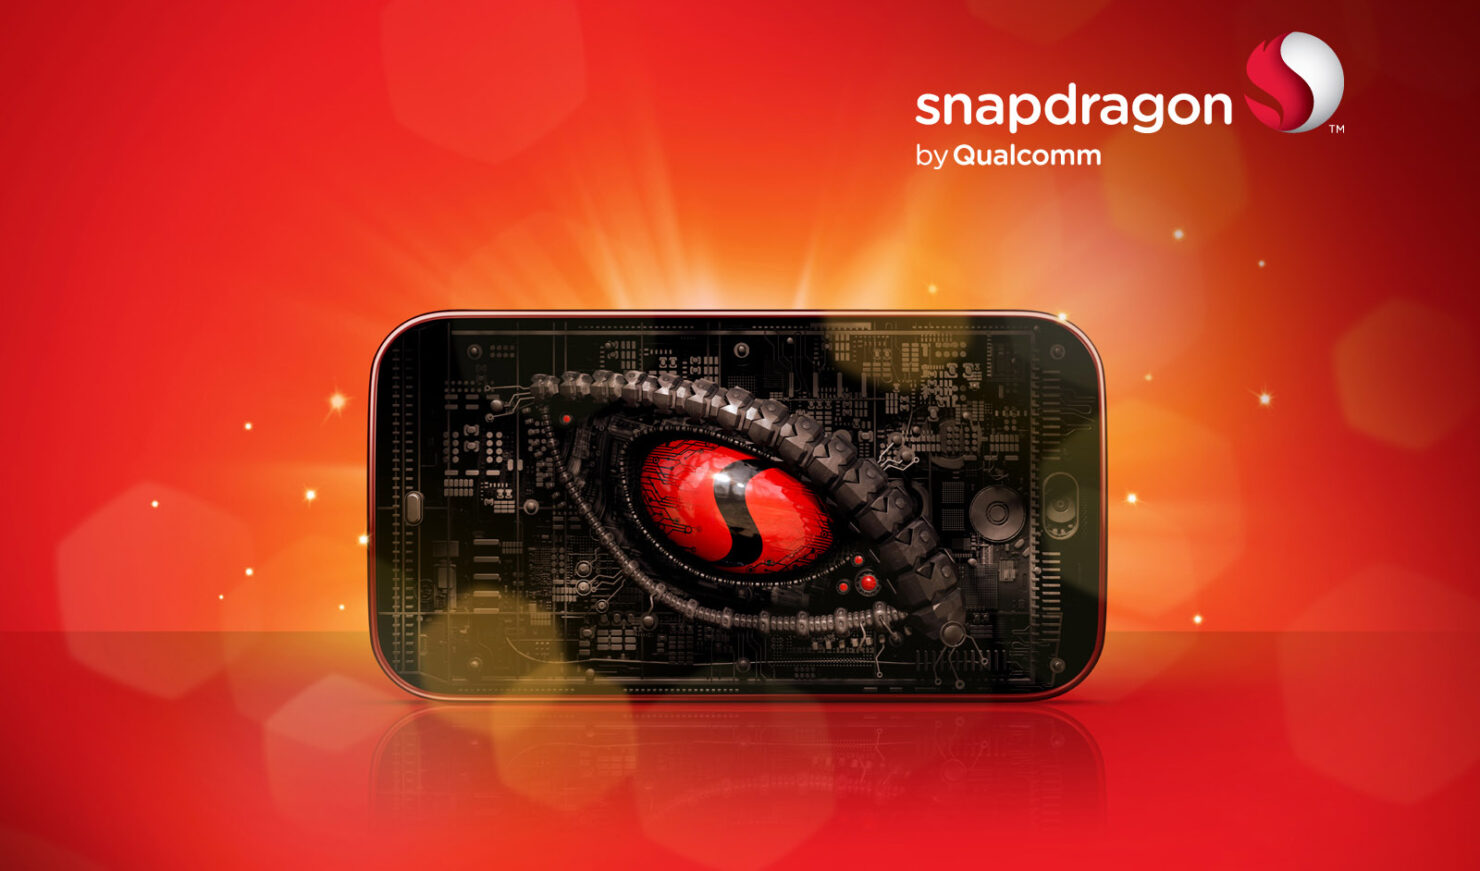 Snapdragon 652 refresh from Qualcomm